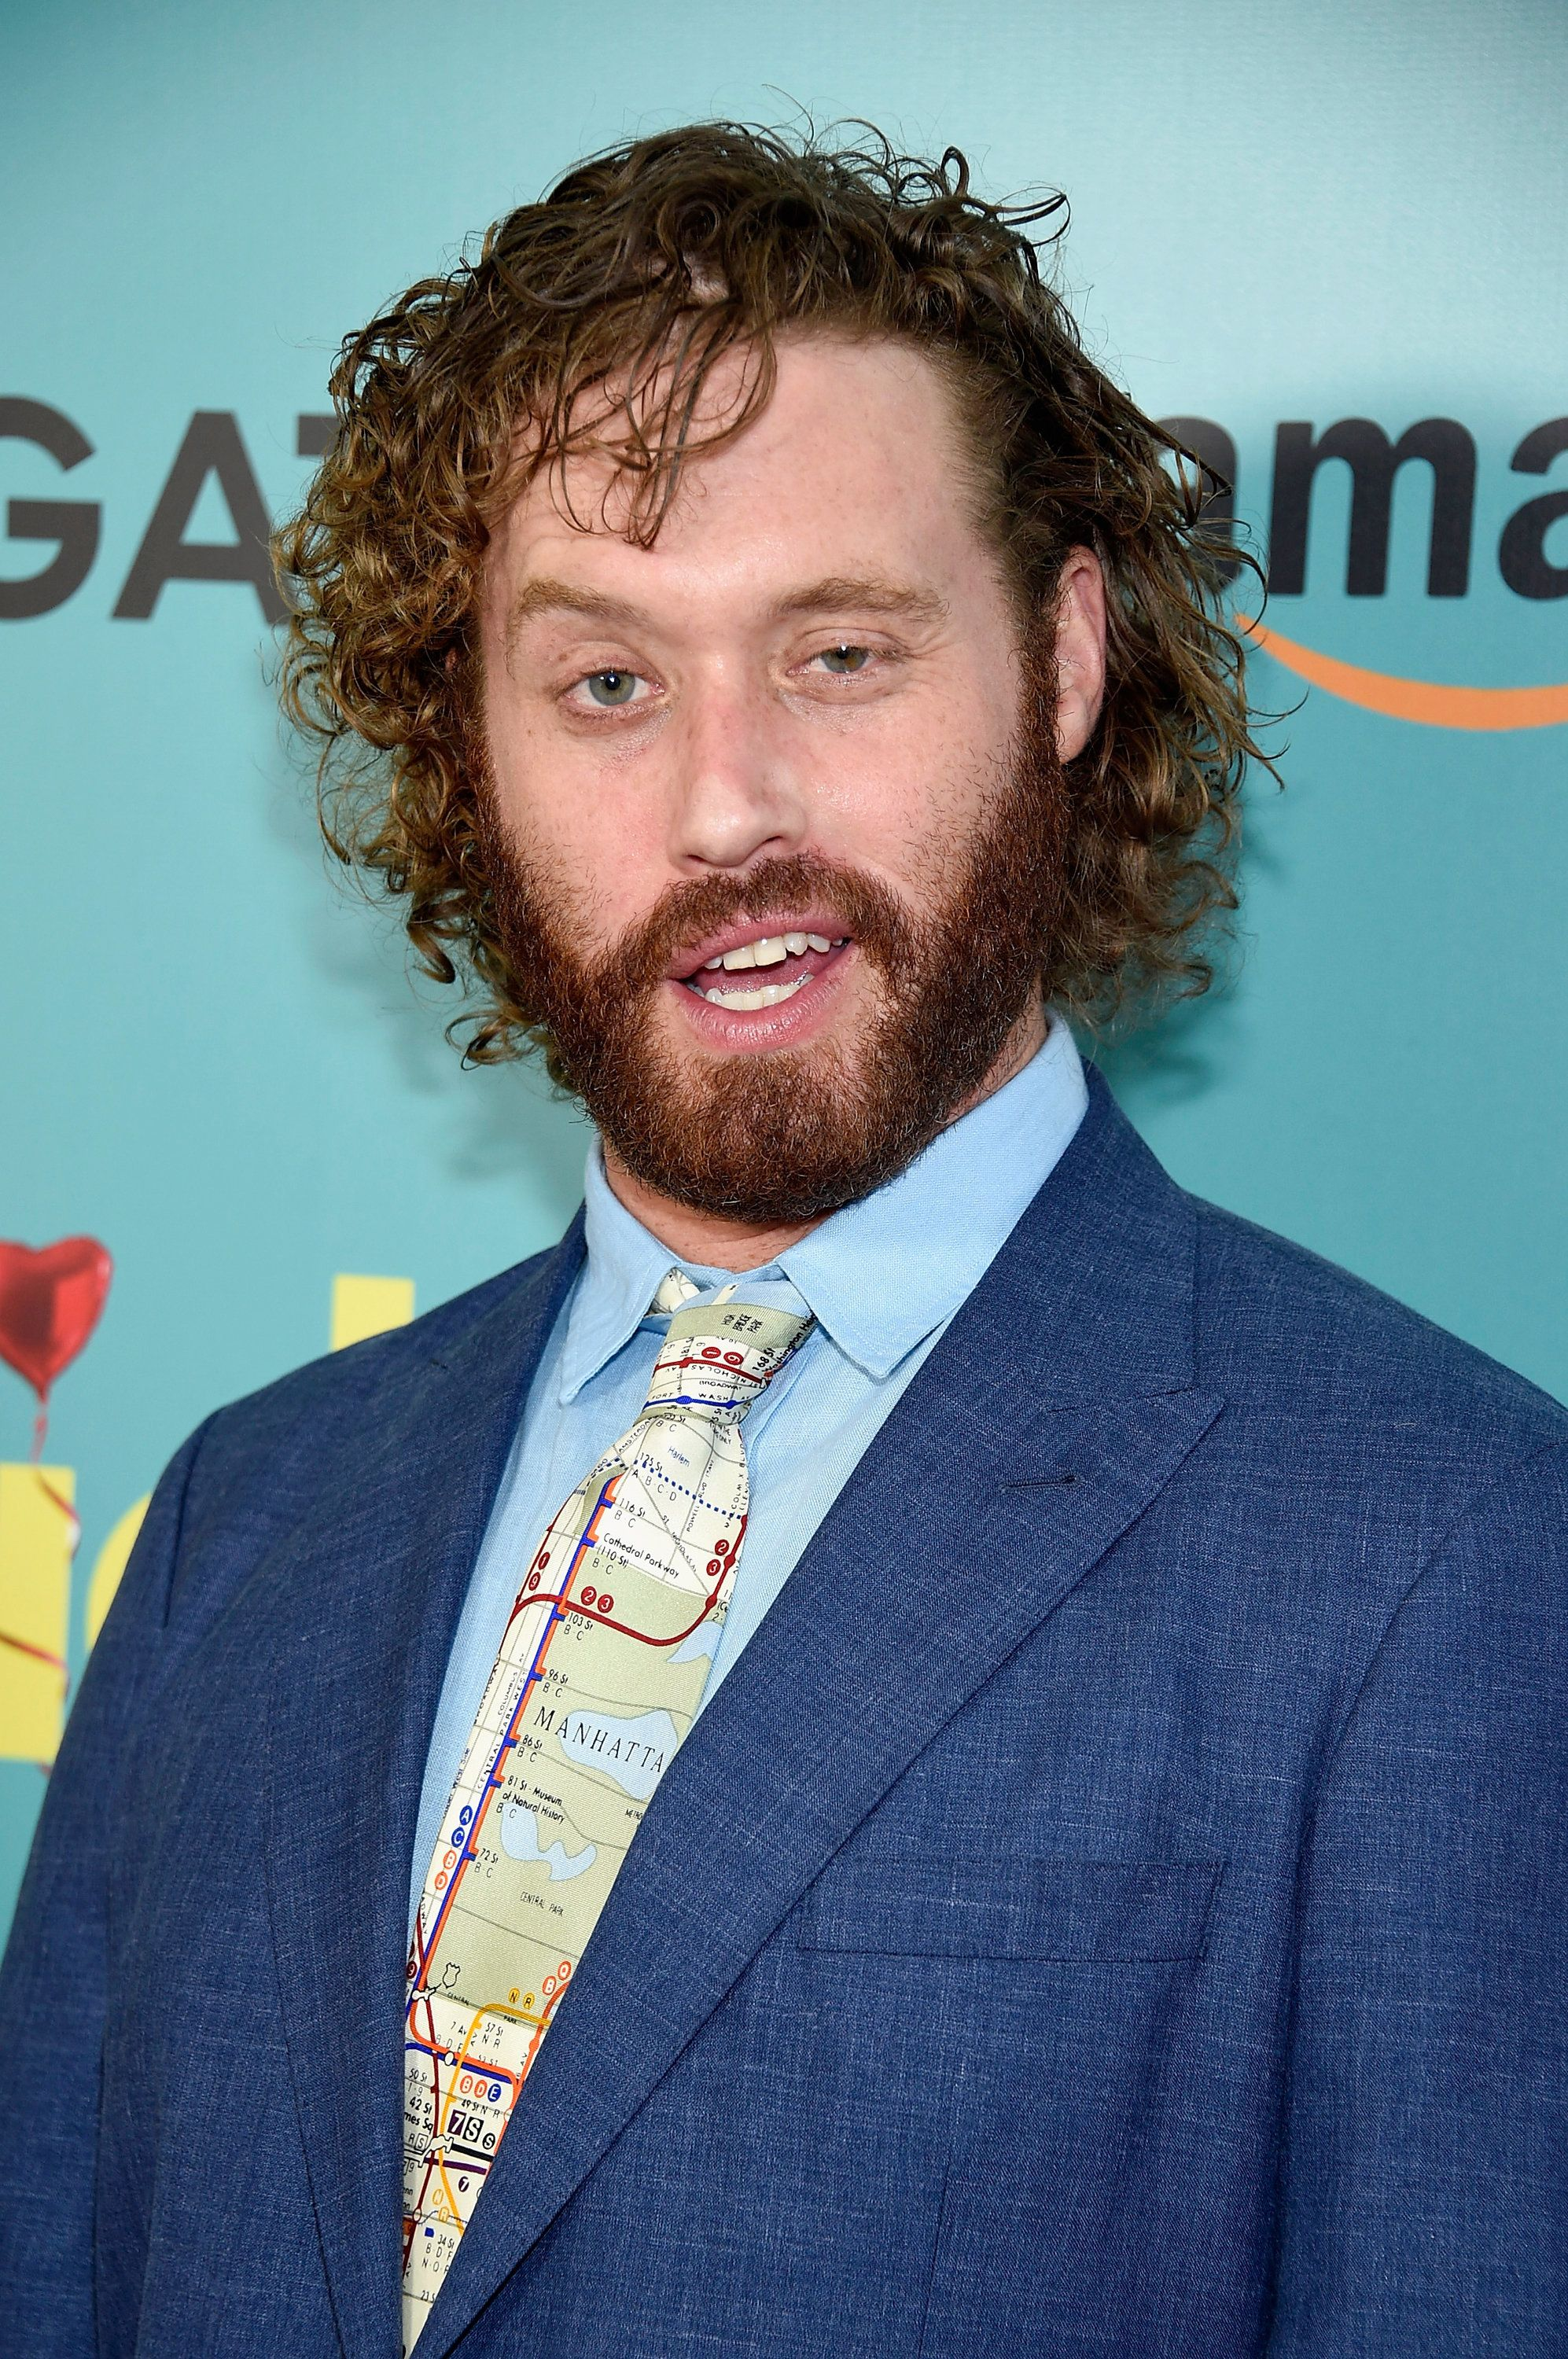 NEW YORK, NY - JUNE 20:  T.J. Miller attends 'The Big Sick' New York Premiere at The Landmark Sunshine Theater on June 20, 2017 in New York City.  (Photo by Dimitrios Kambouris/Getty Images)